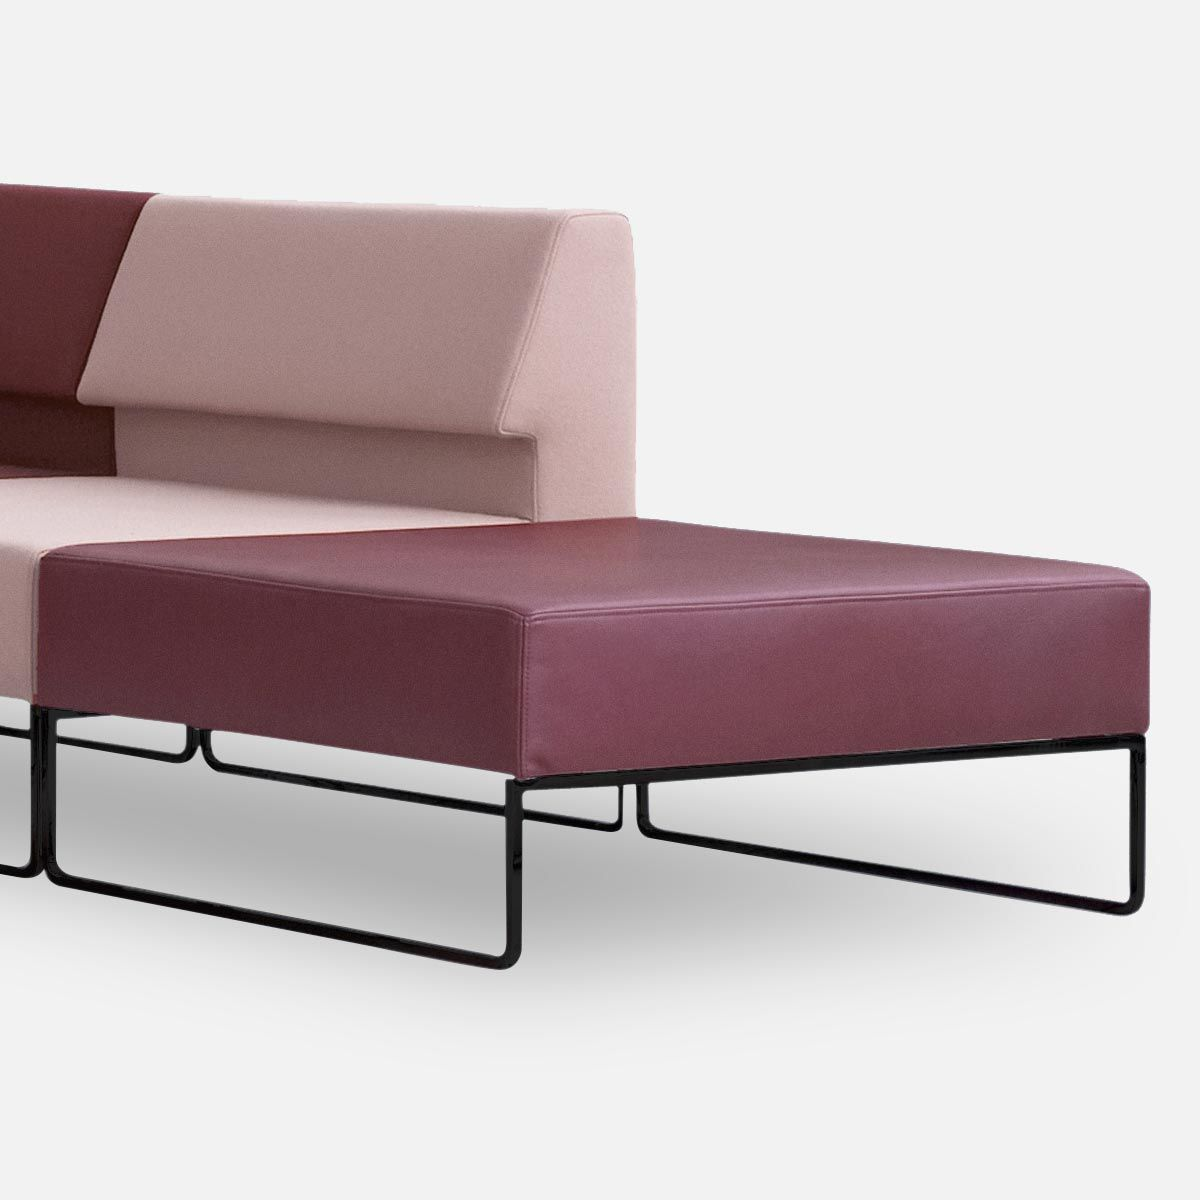 corner sofa  modular  contemporary  leather  couch by morten  -  corner sofa  modular  contemporary  leather couch by morten voss halle